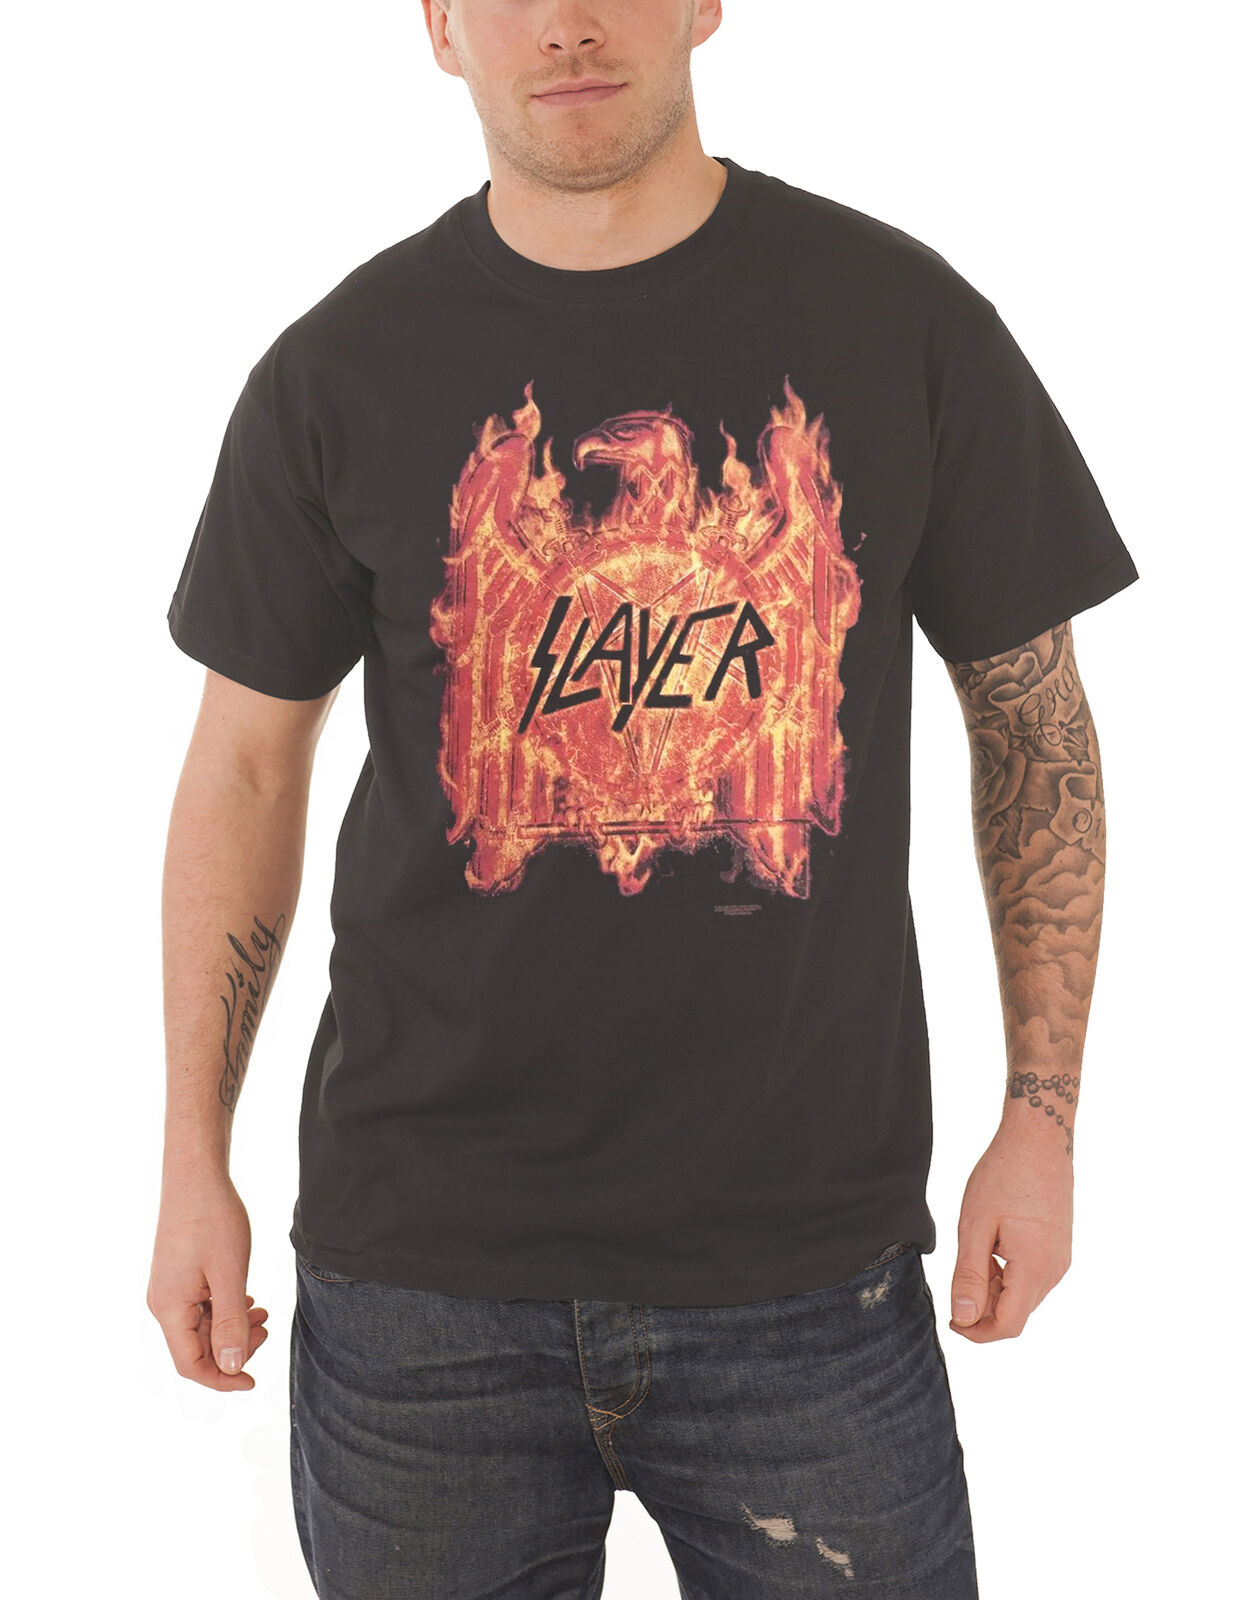 Flaming Shirt T Tour Repentless Eagle Nouveau Slayer 2016 75z4qR5